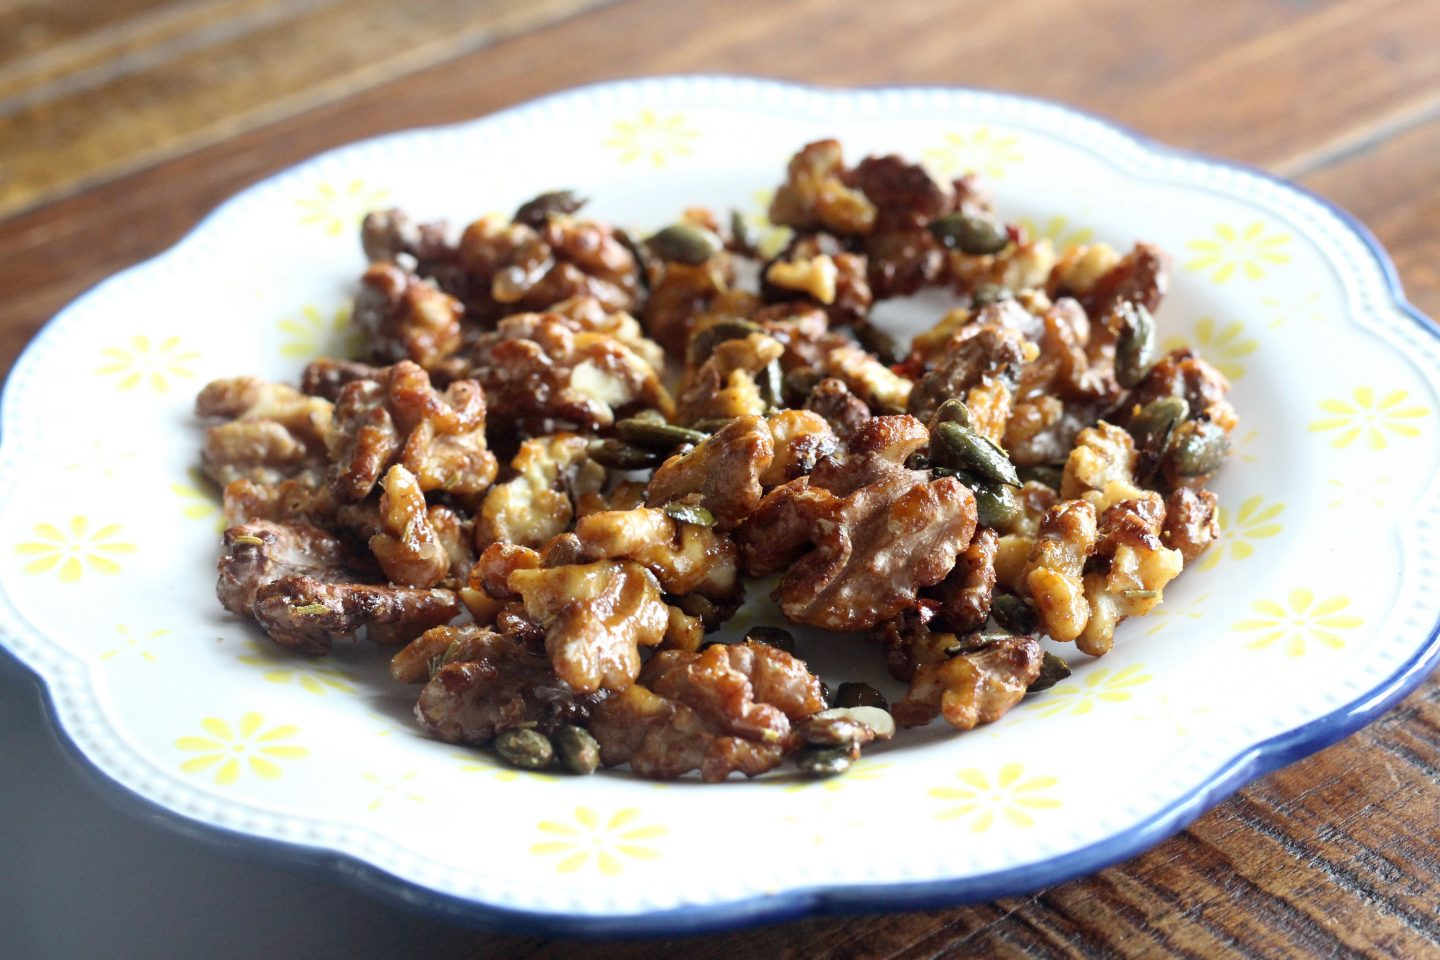 Smoky Rosemary & Chilli Walnuts